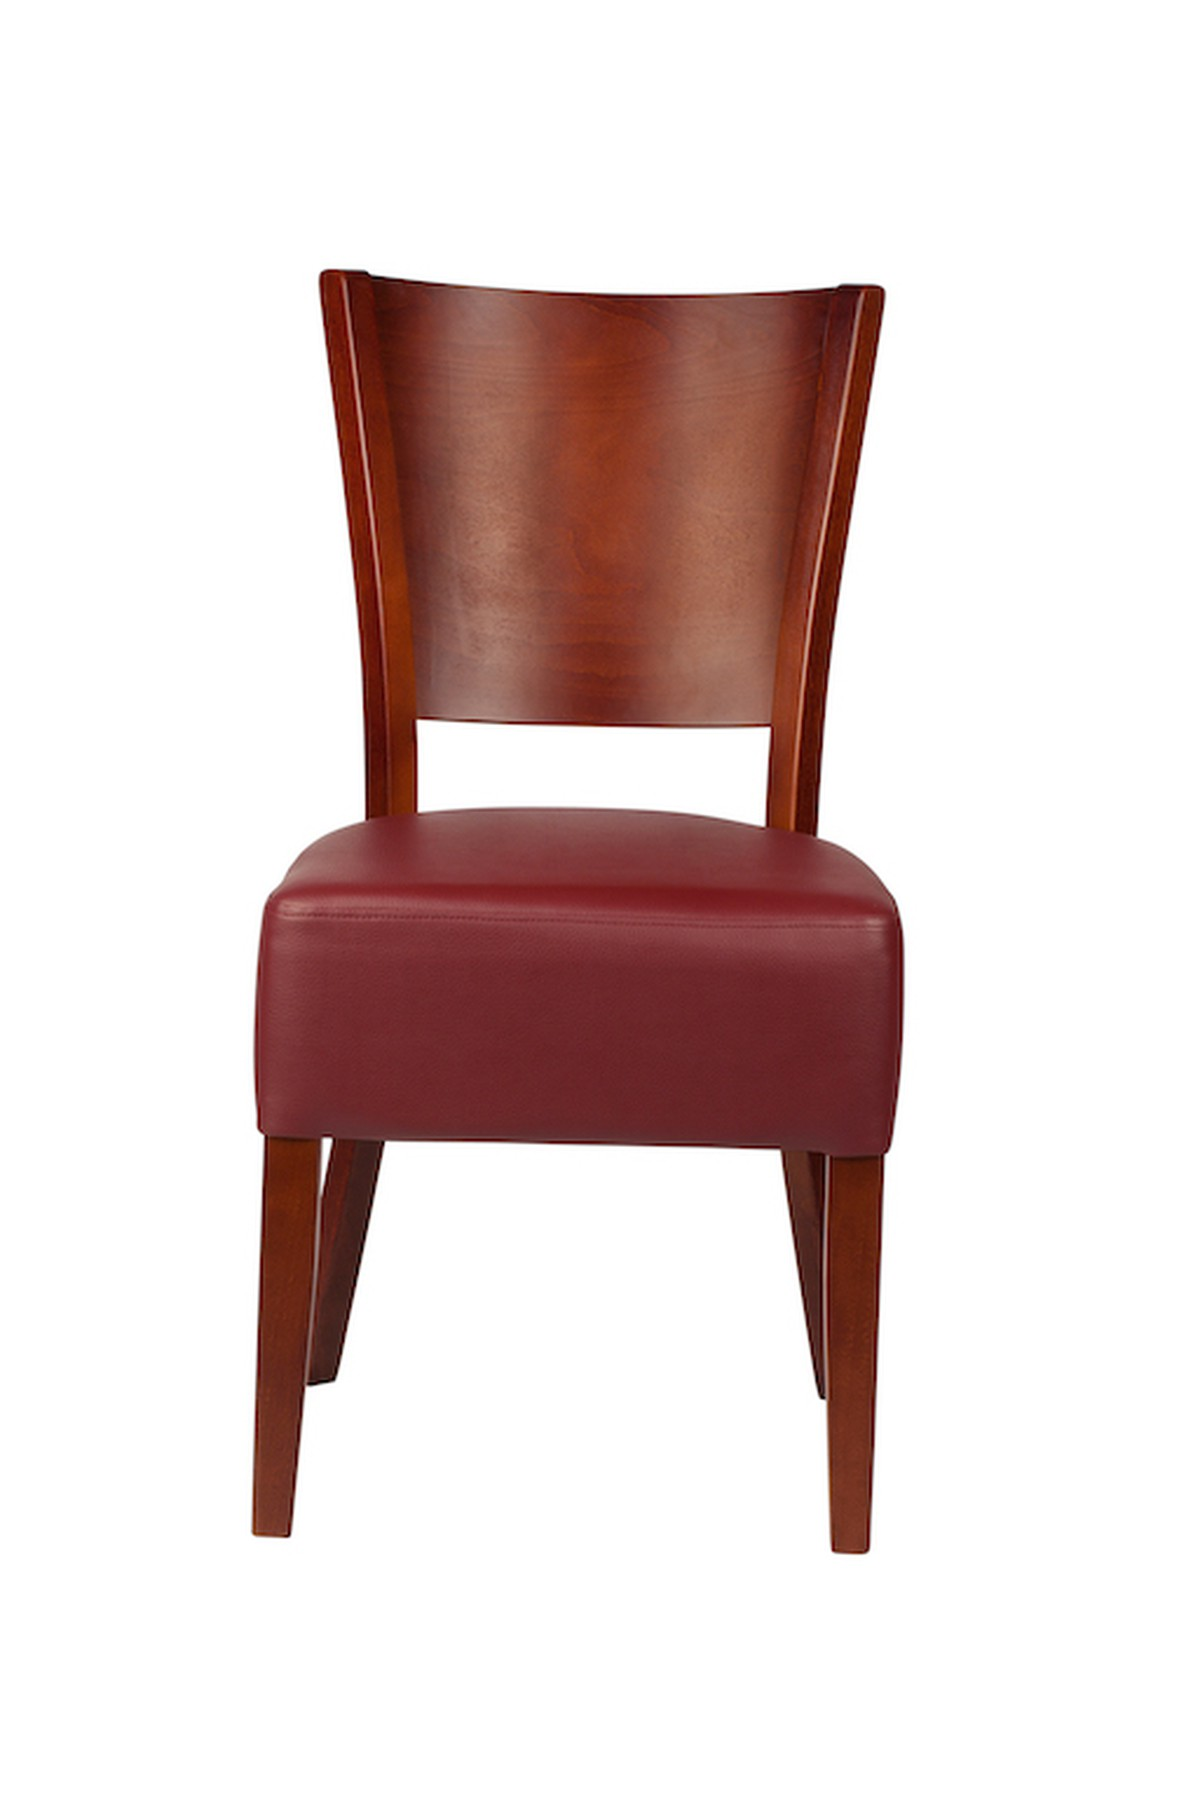 Secondhand hotel furniture dining chairs designer